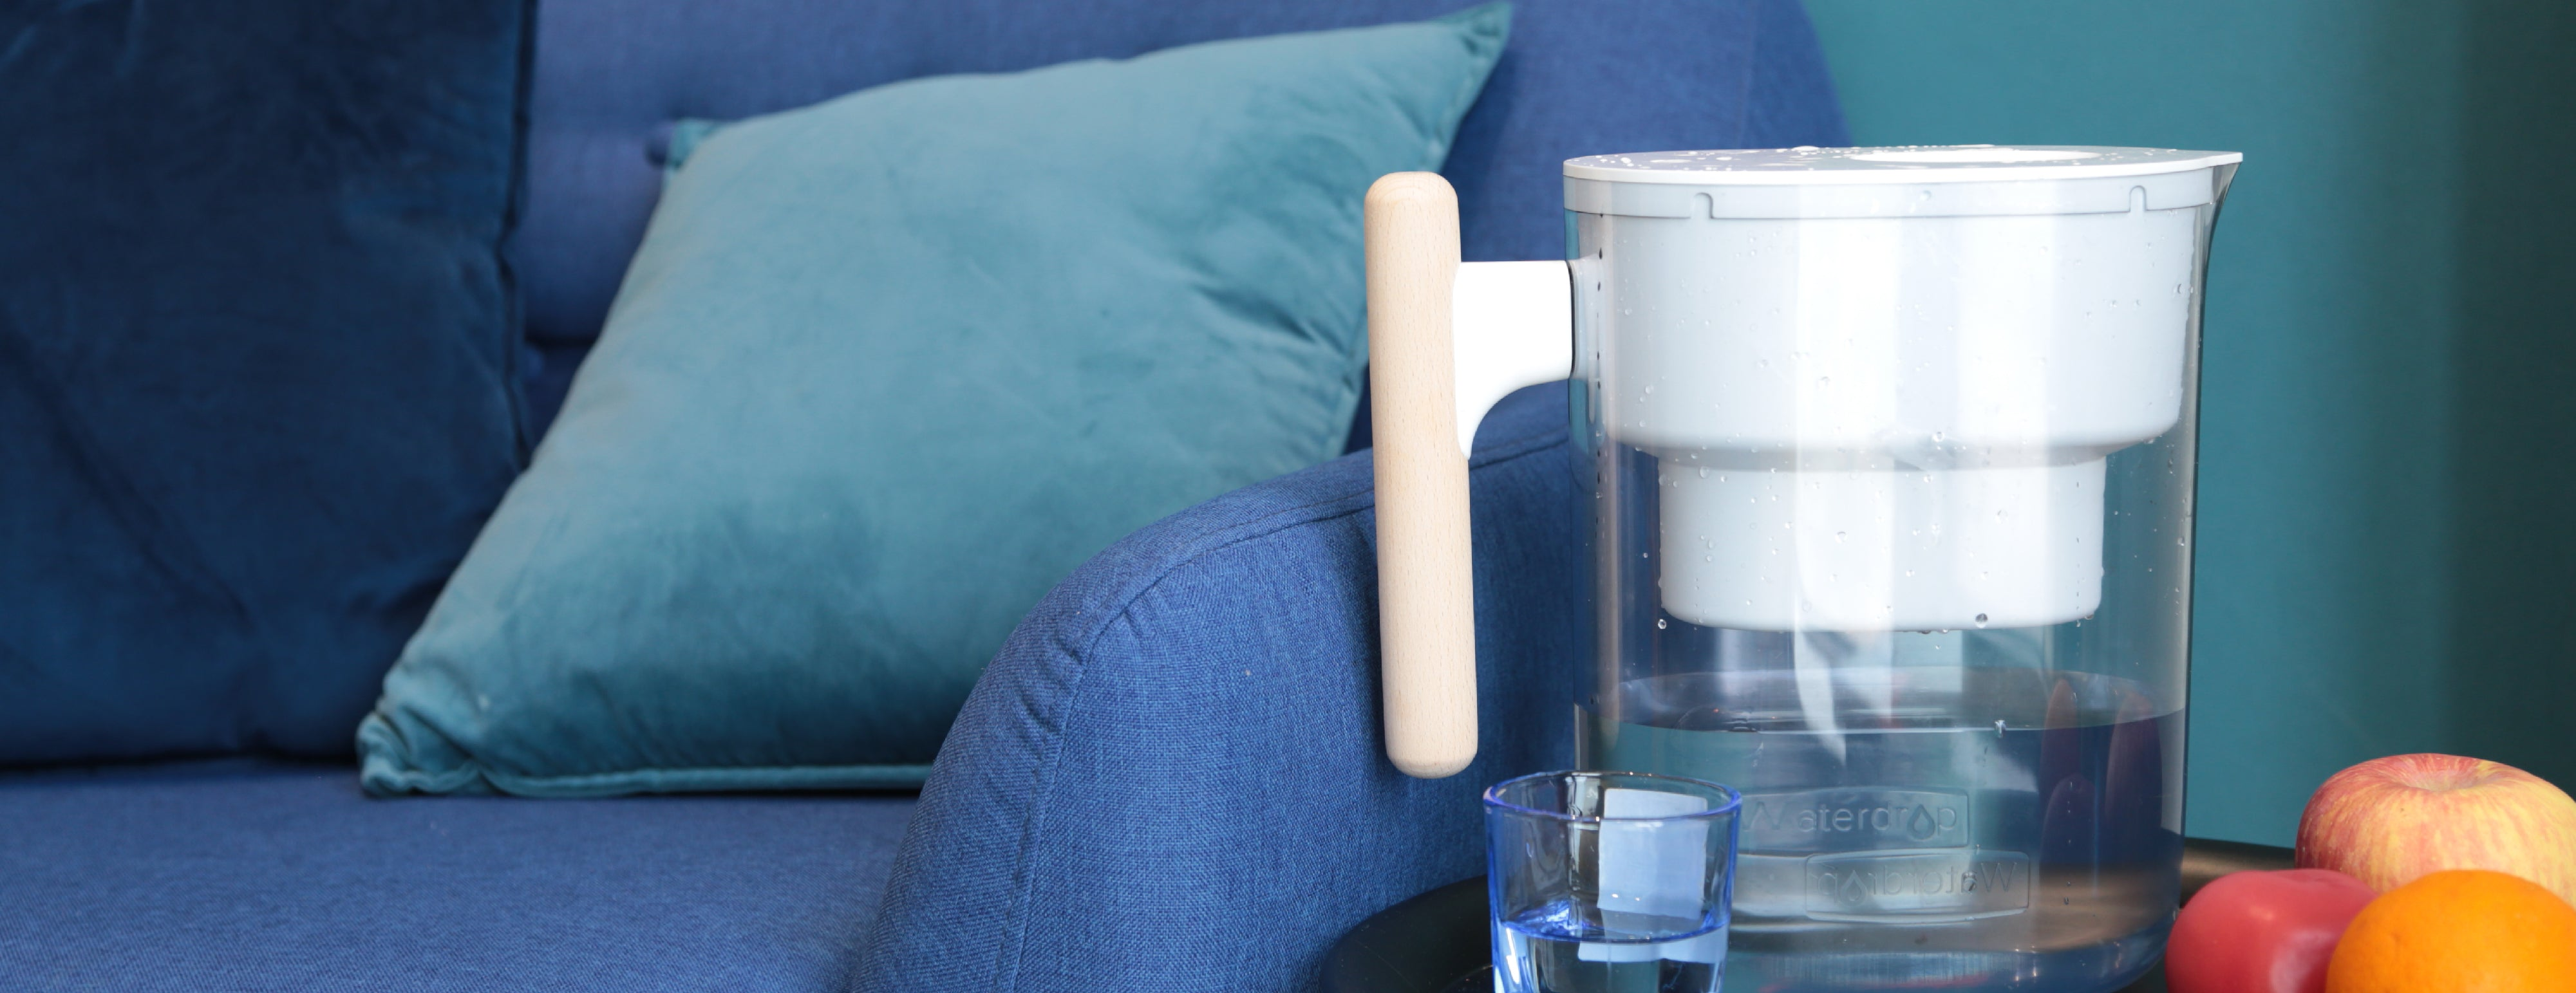 A water purifier pitcher on a couch